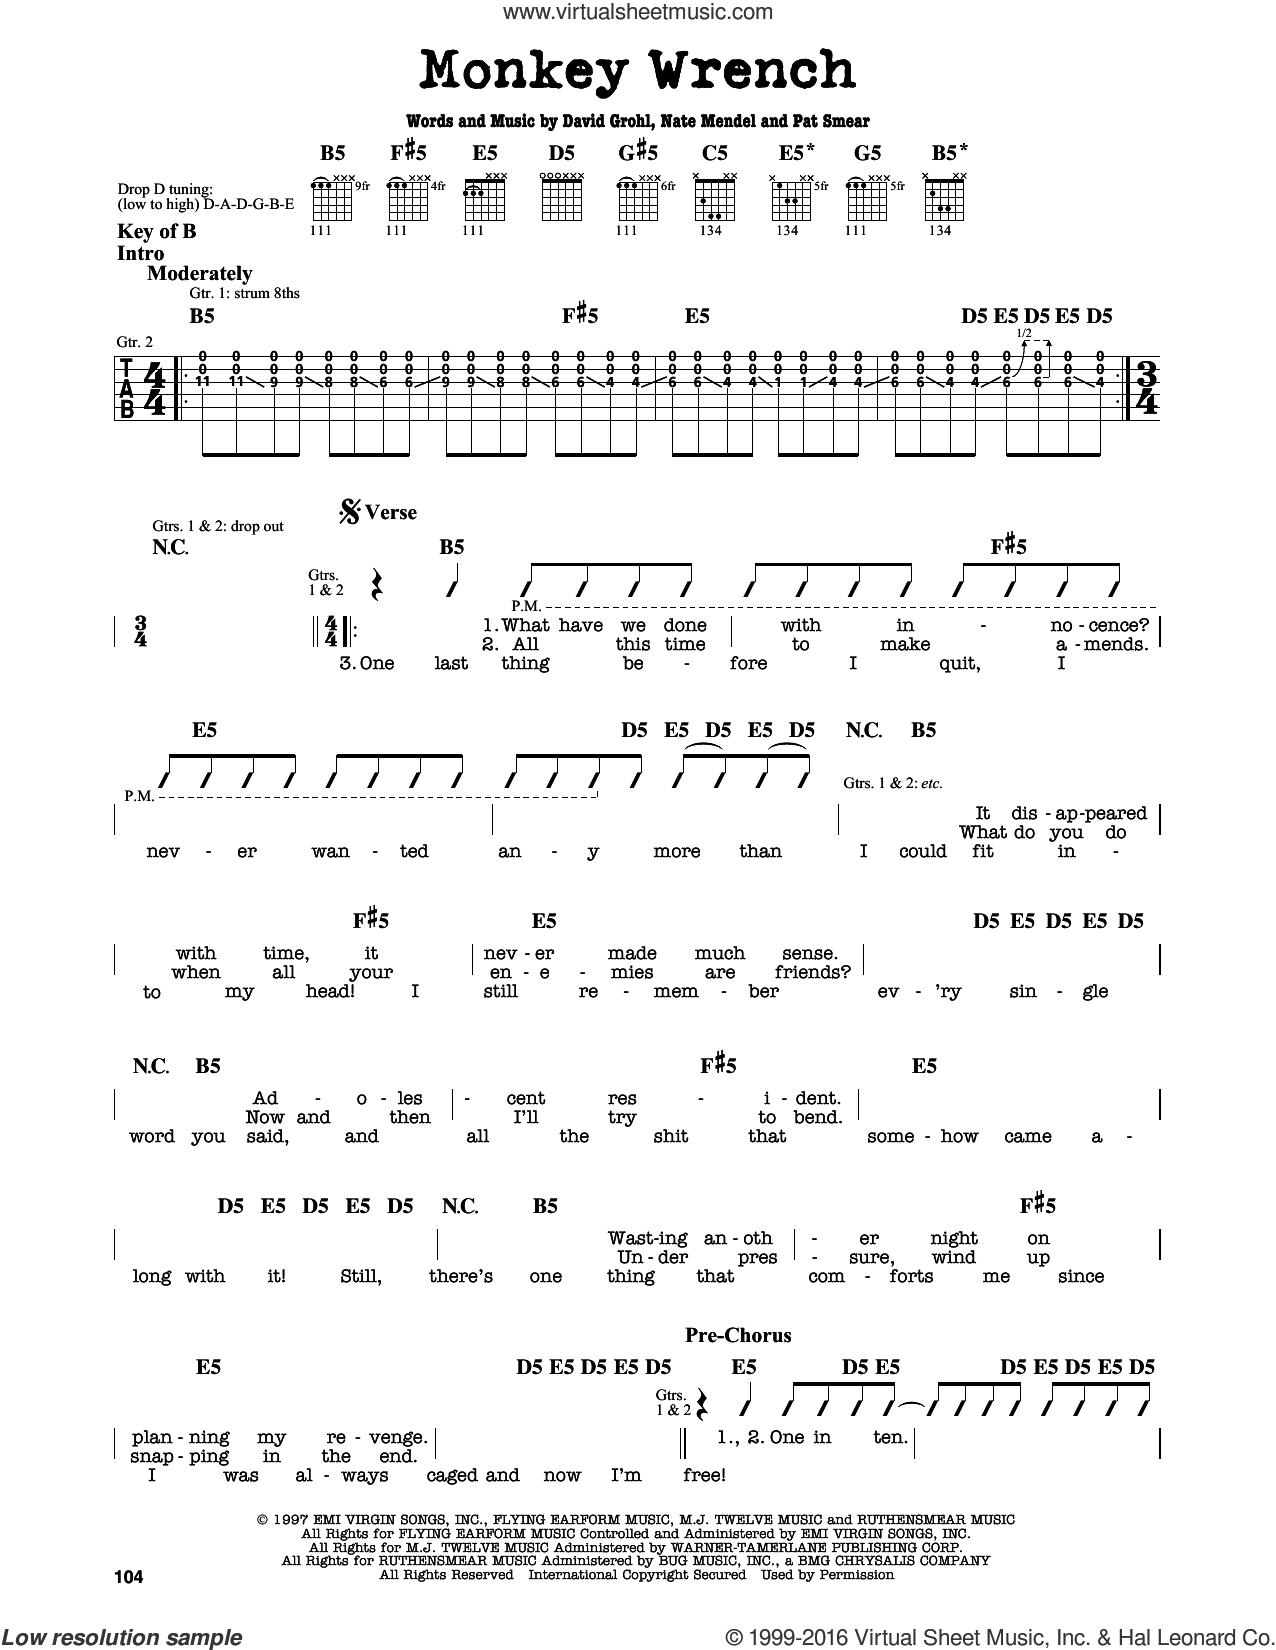 Monkey Wrench sheet music for guitar solo (lead sheet) by Foo Fighters, Dave Grohl, Georg Ruthenberg and Nate Mendel, intermediate guitar (lead sheet)